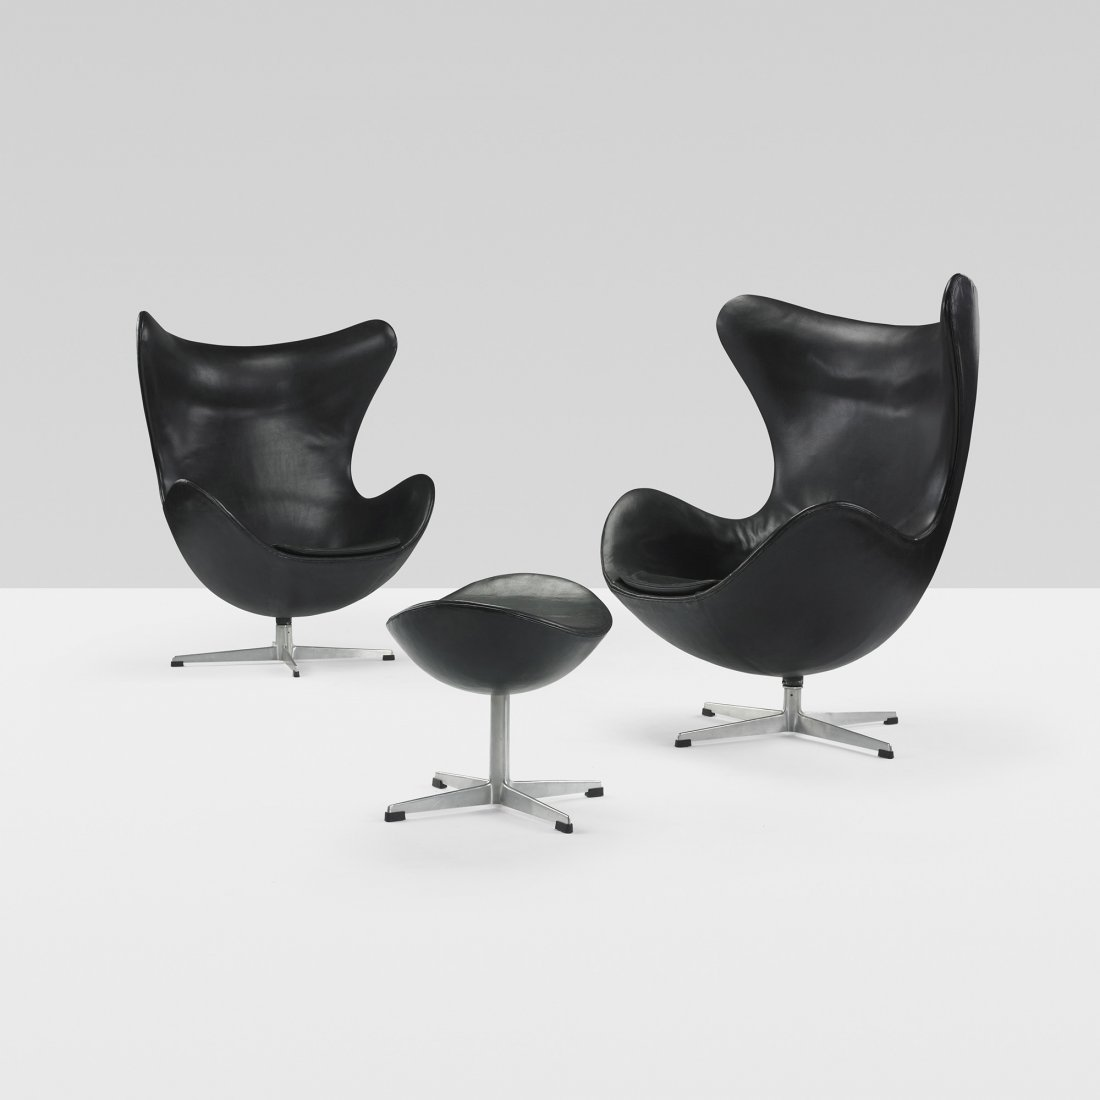 216: Arne Jacobsen pair of Egg chairs and ottoman